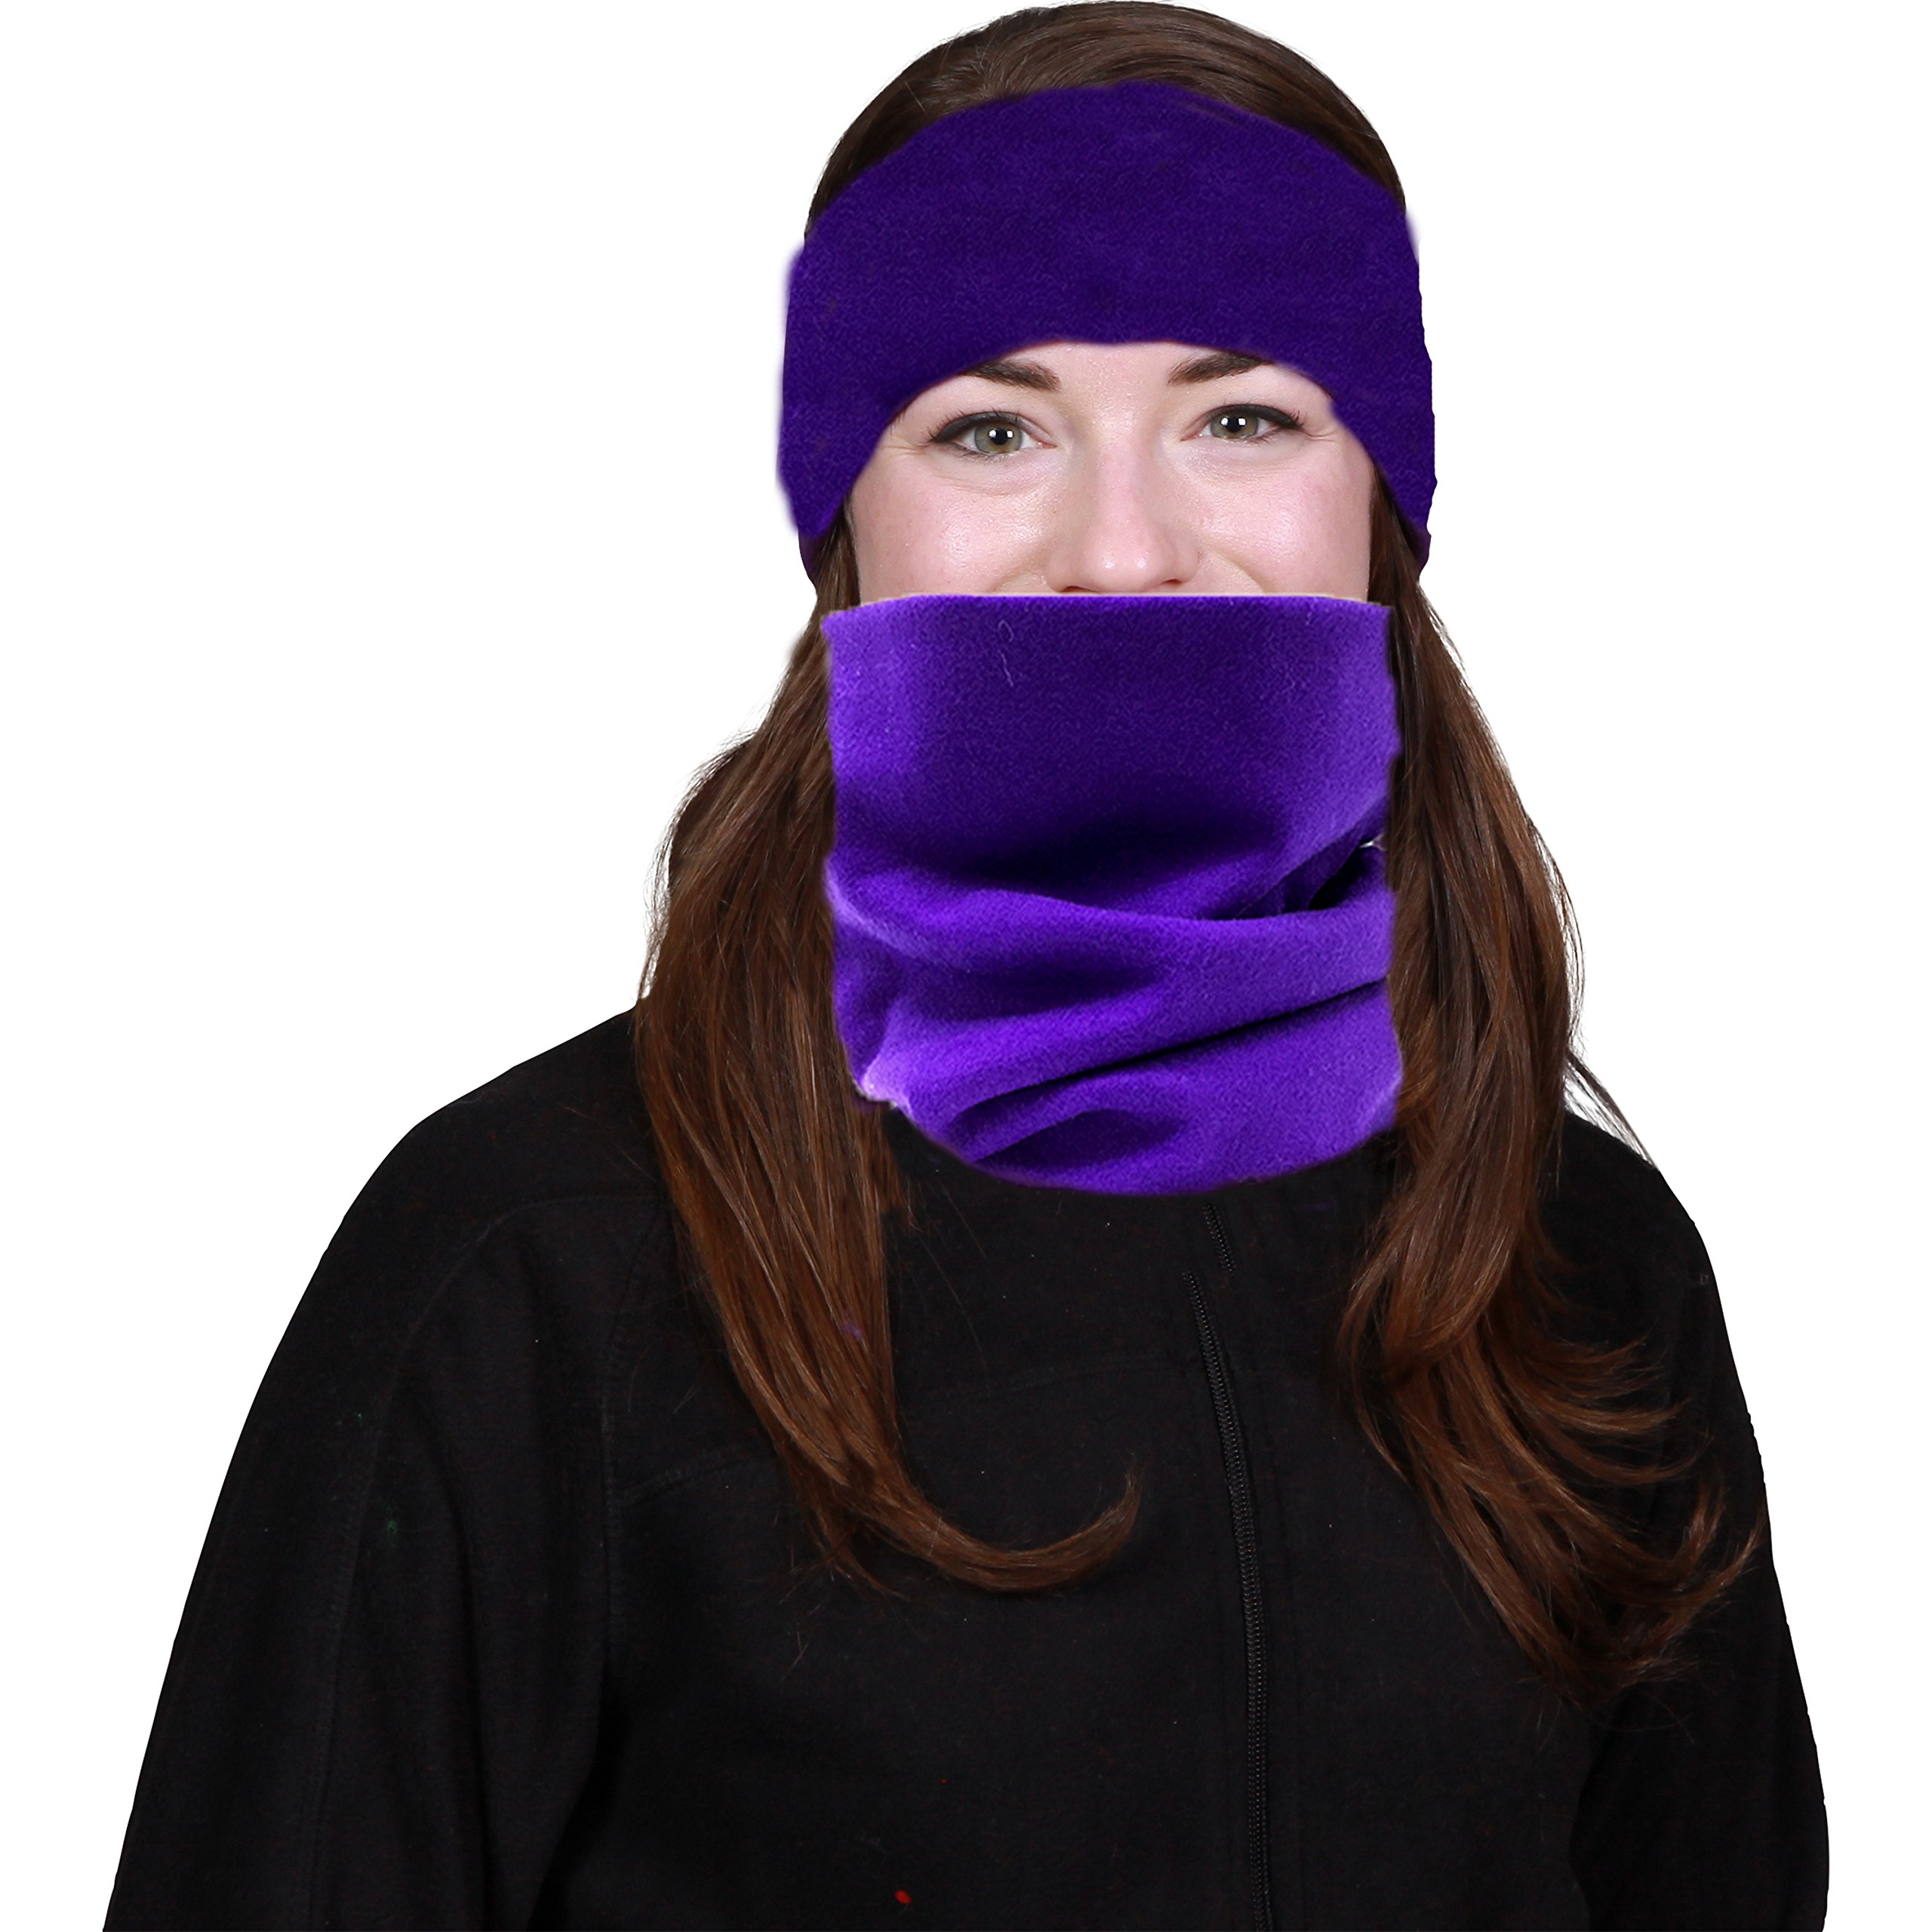 3-in-1 Neck Warmer Face Mask & Headband/Hat (2-Pack)